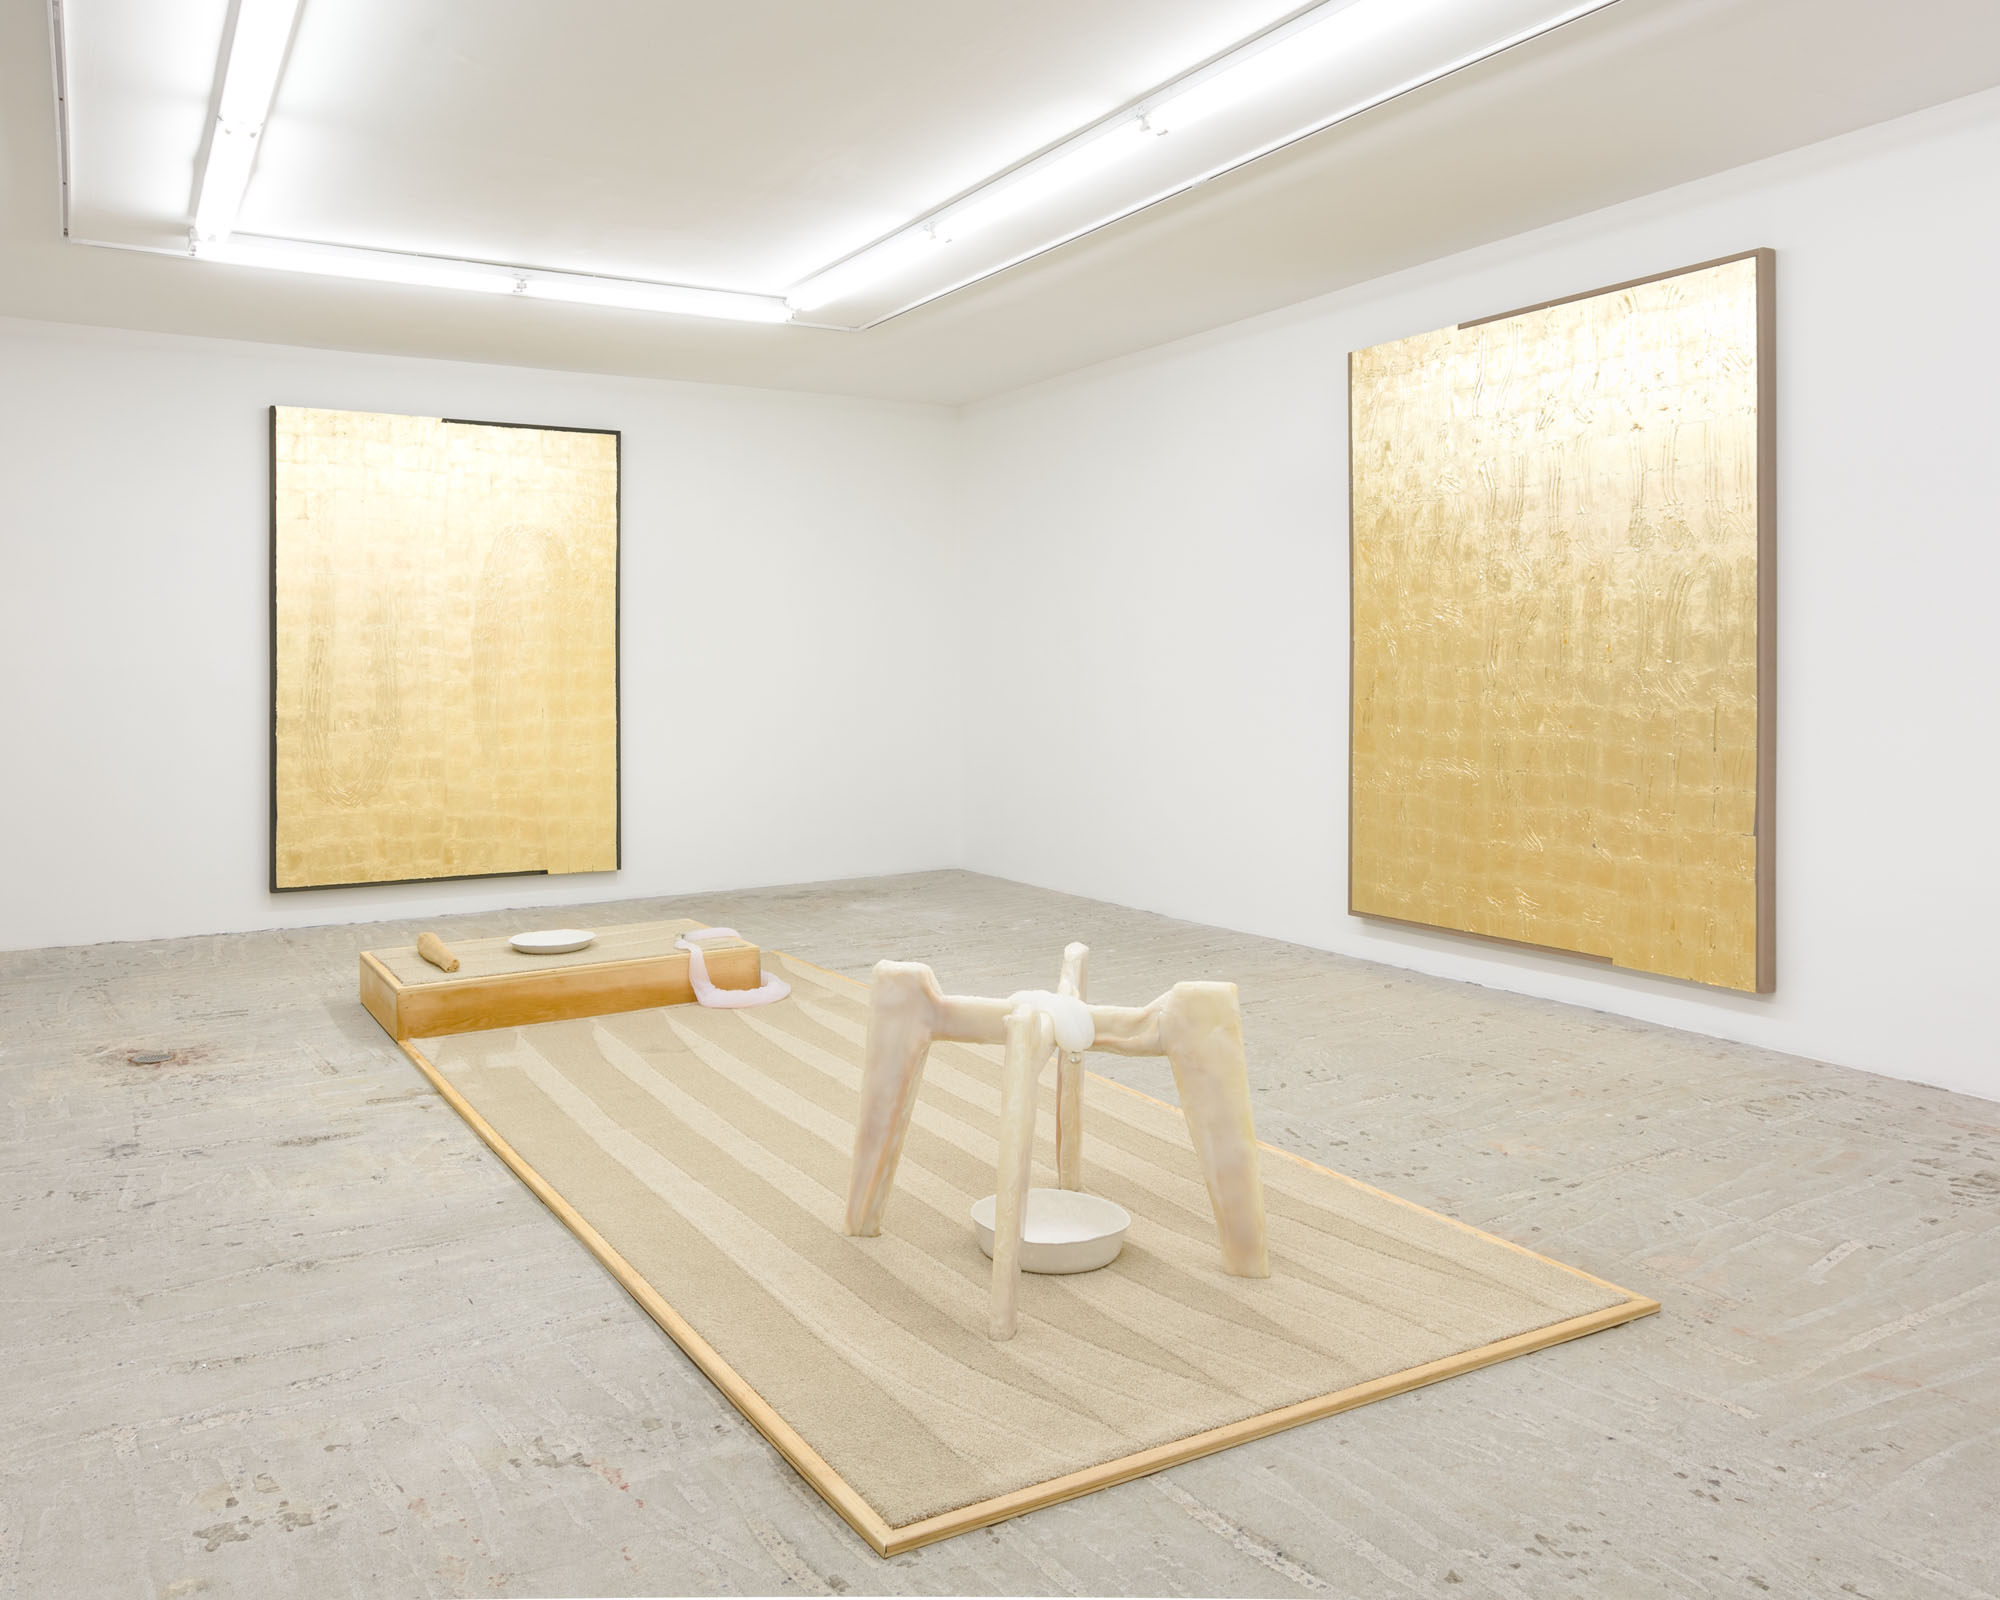 Erica Mahinay   Just Let the Breath Breathe Itself , 2019  Installation View at Lyles & King